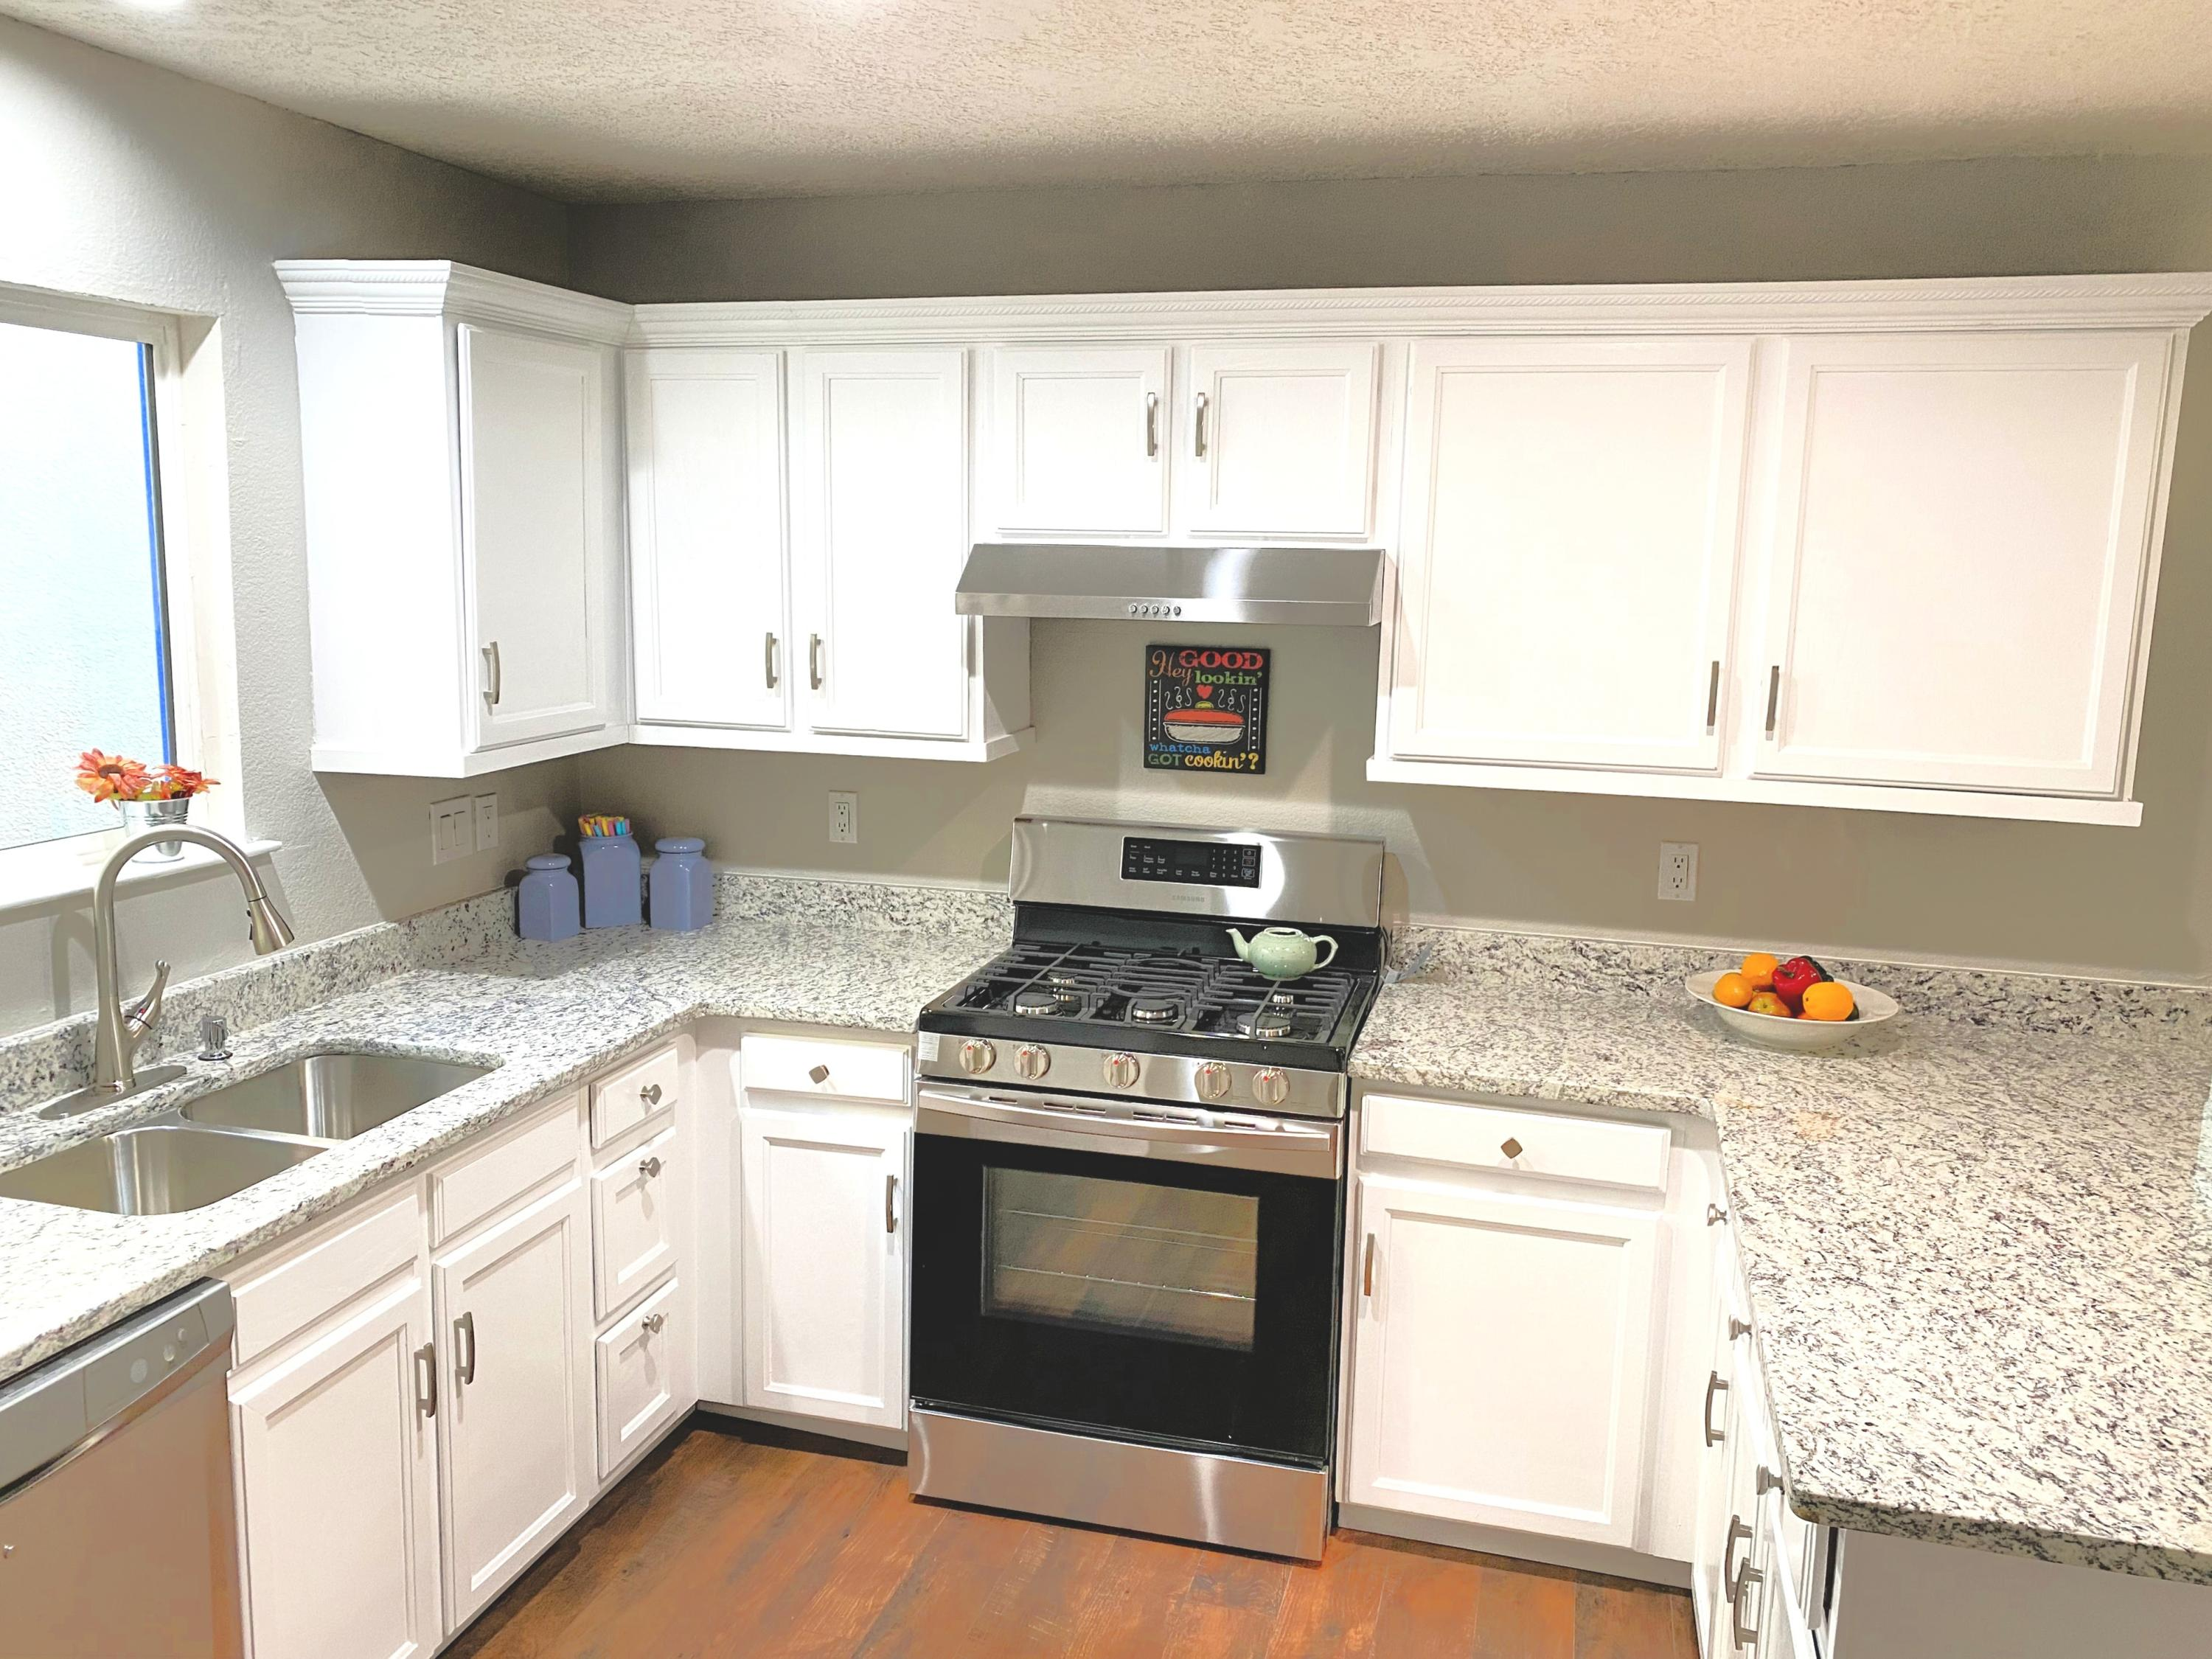 Beautifully remodeled 3 bedrooms, 2 bath townhome located in a convenient location across the street from a park. This home features an open floor plan, new appliances and granite counter tops!